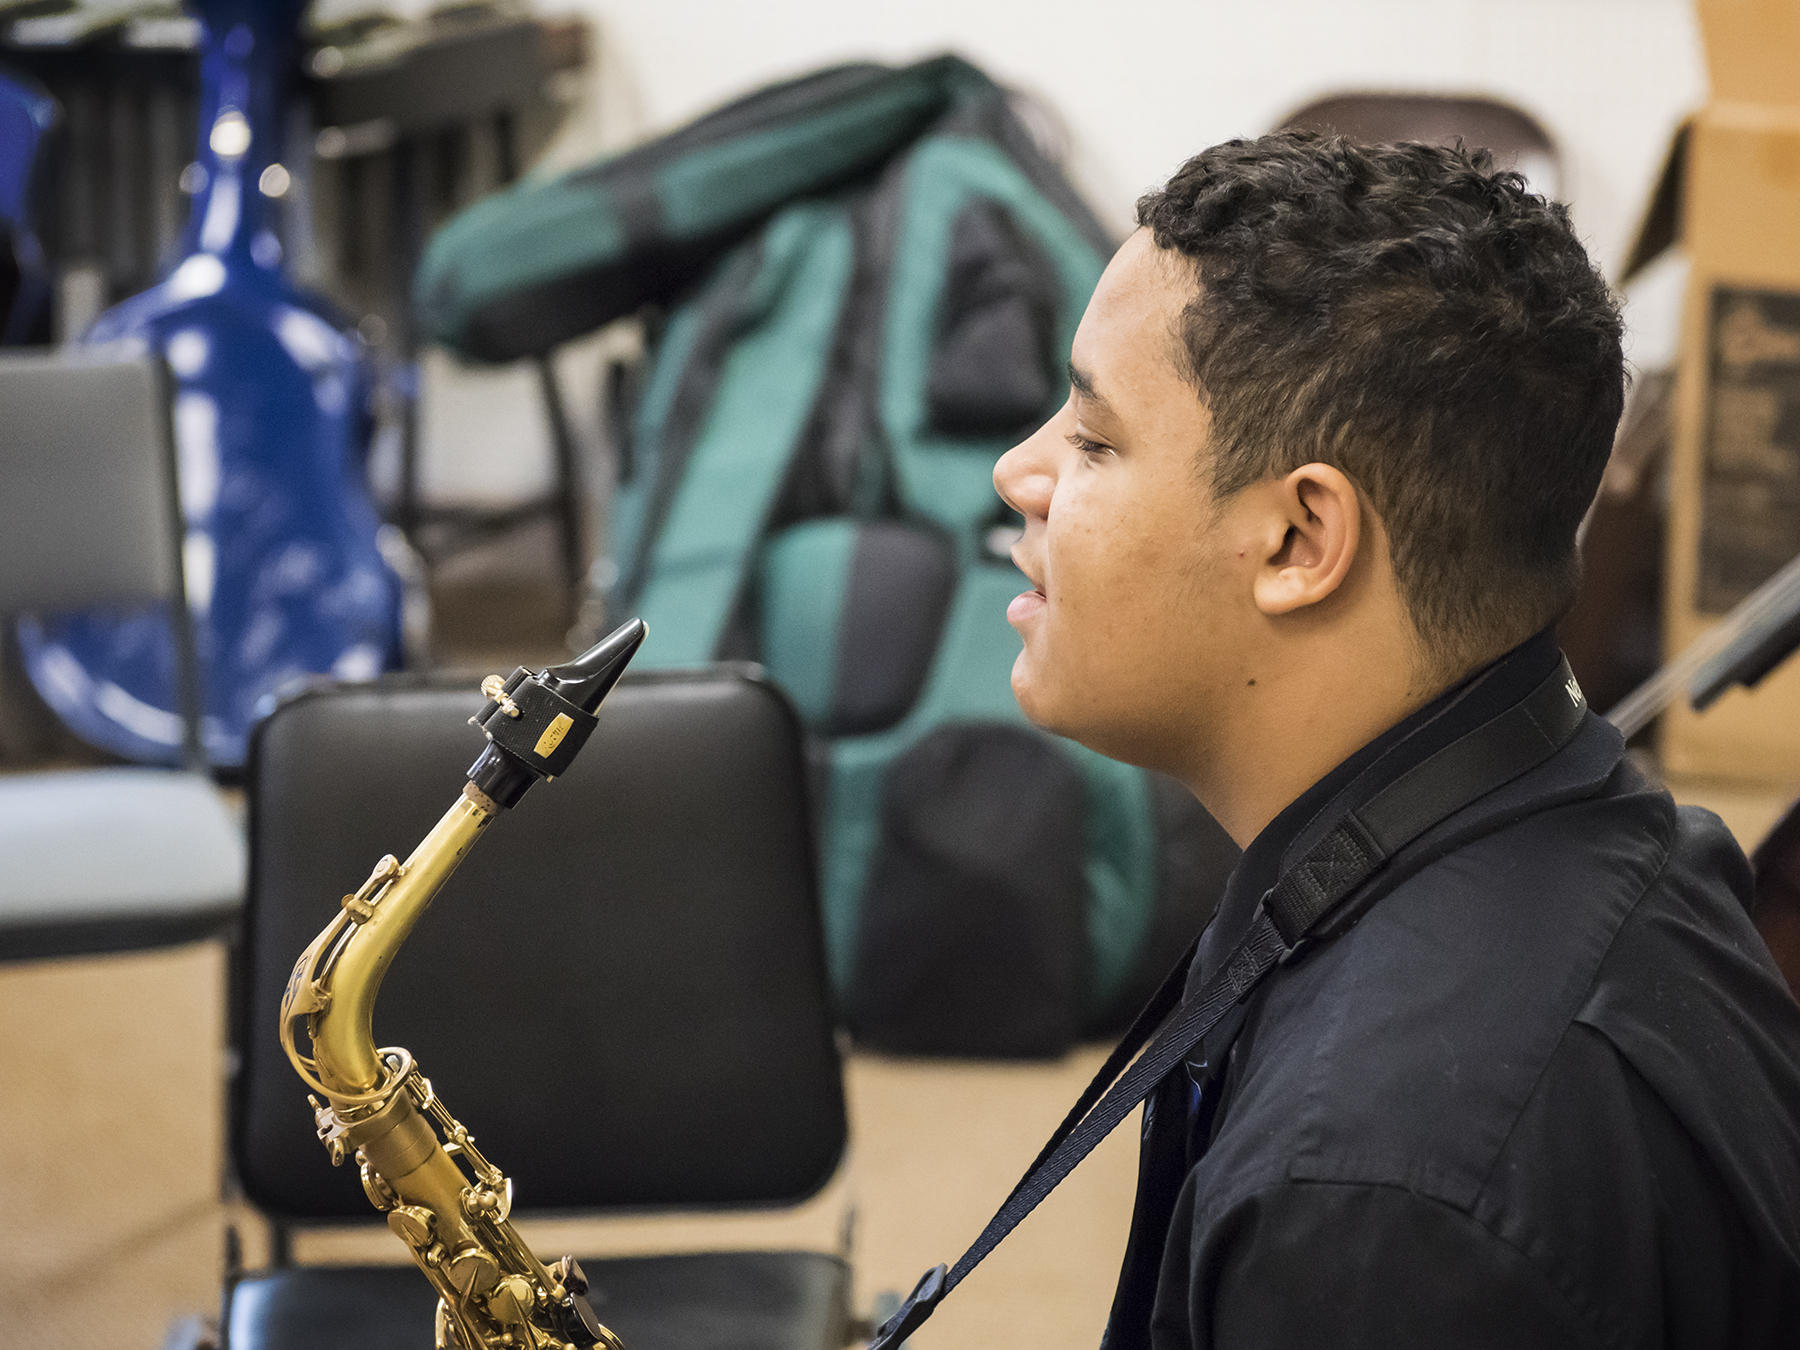 A Prep Jazz sax player